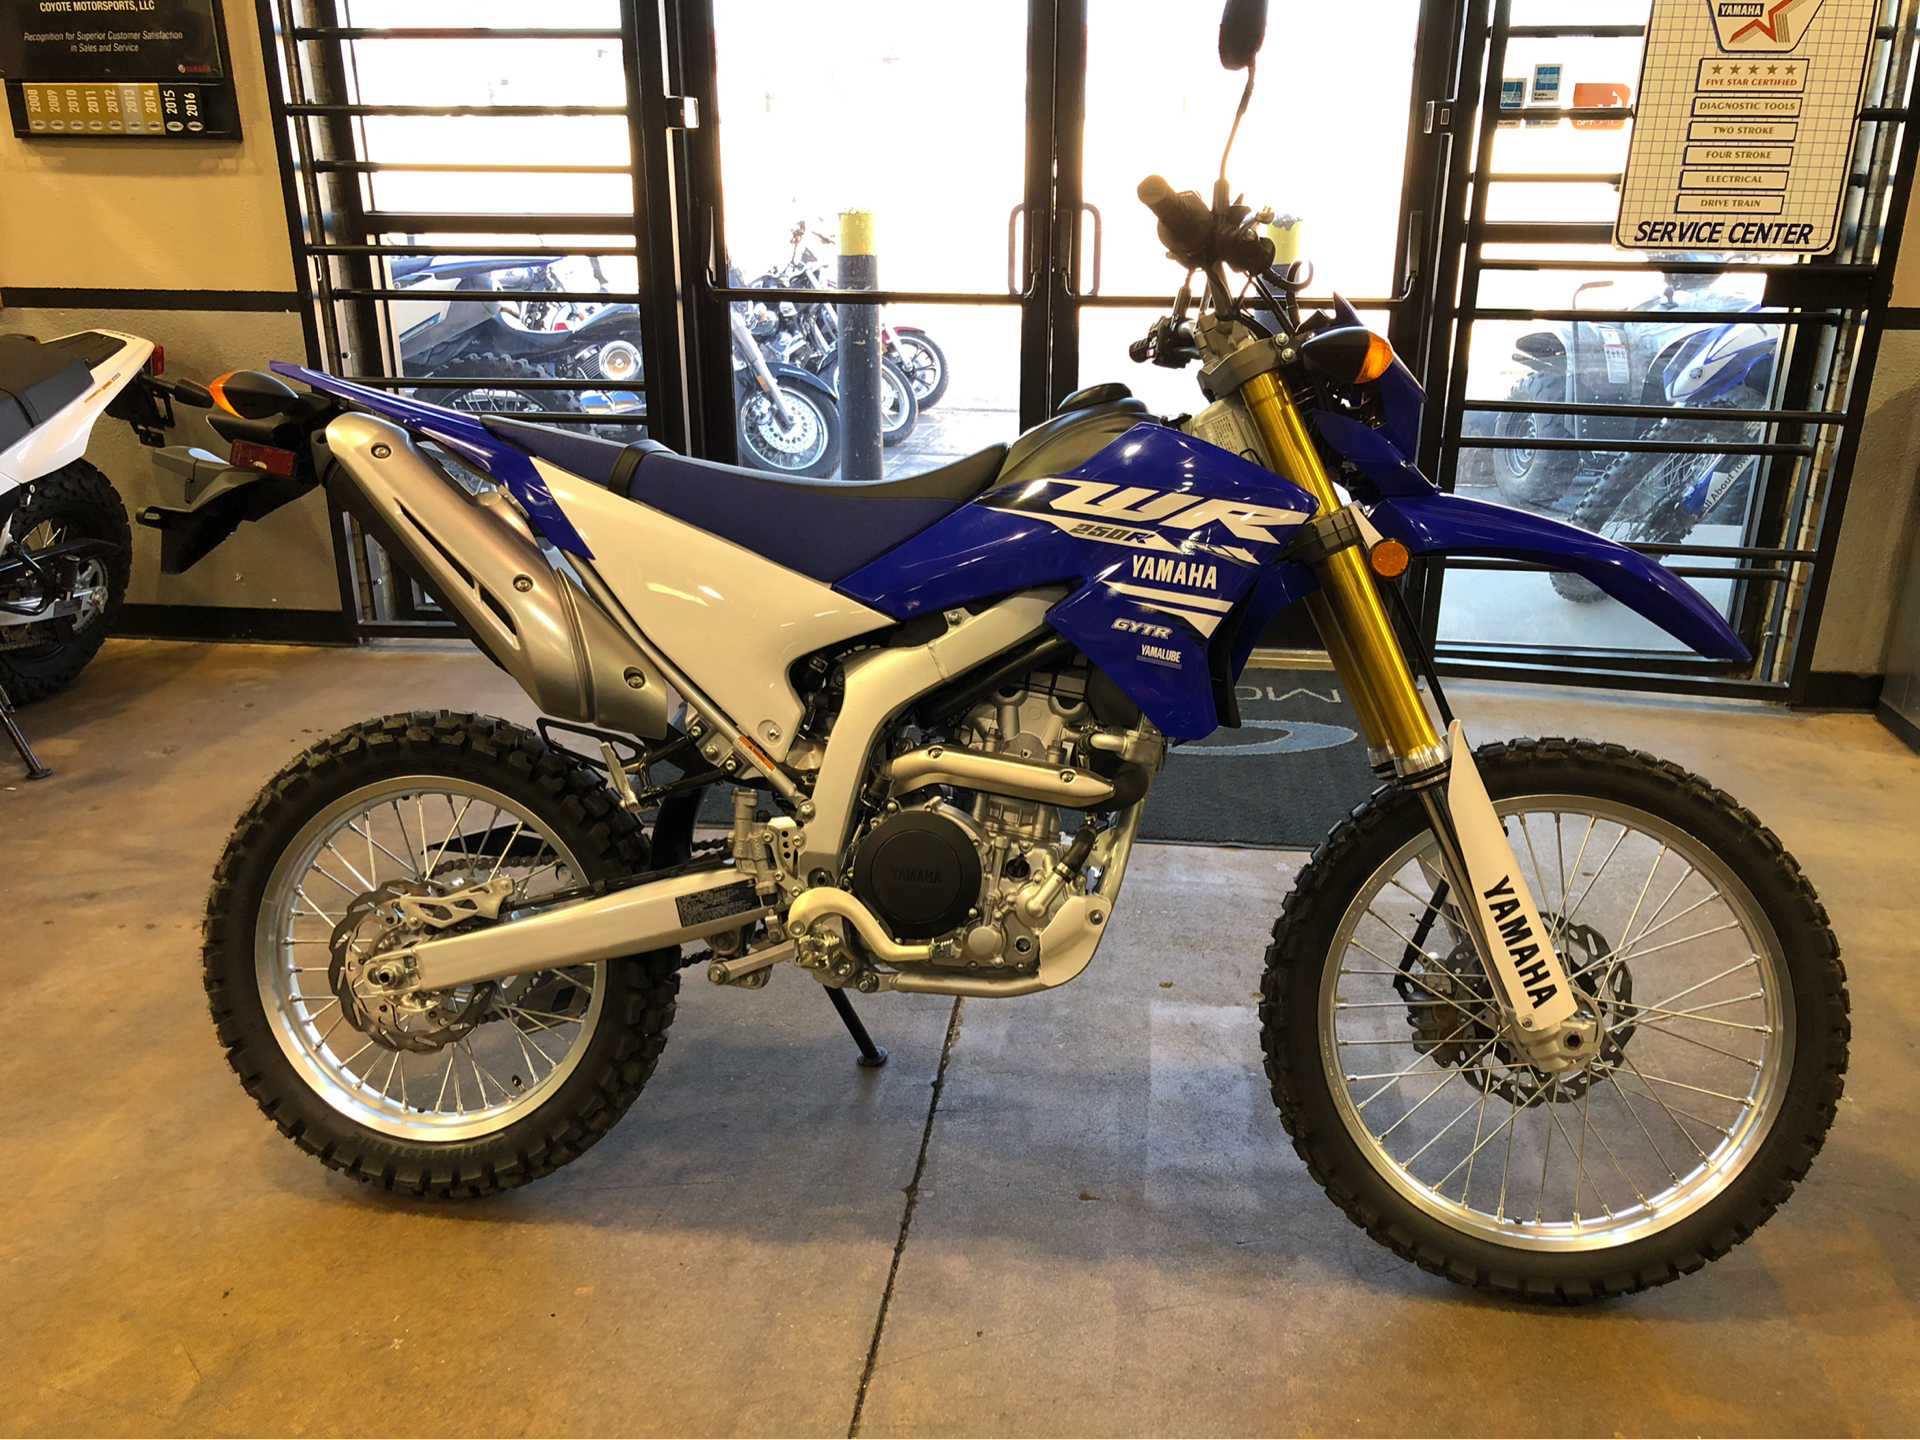 2018 Yamaha WR250R in Denver, Colorado - Photo 5